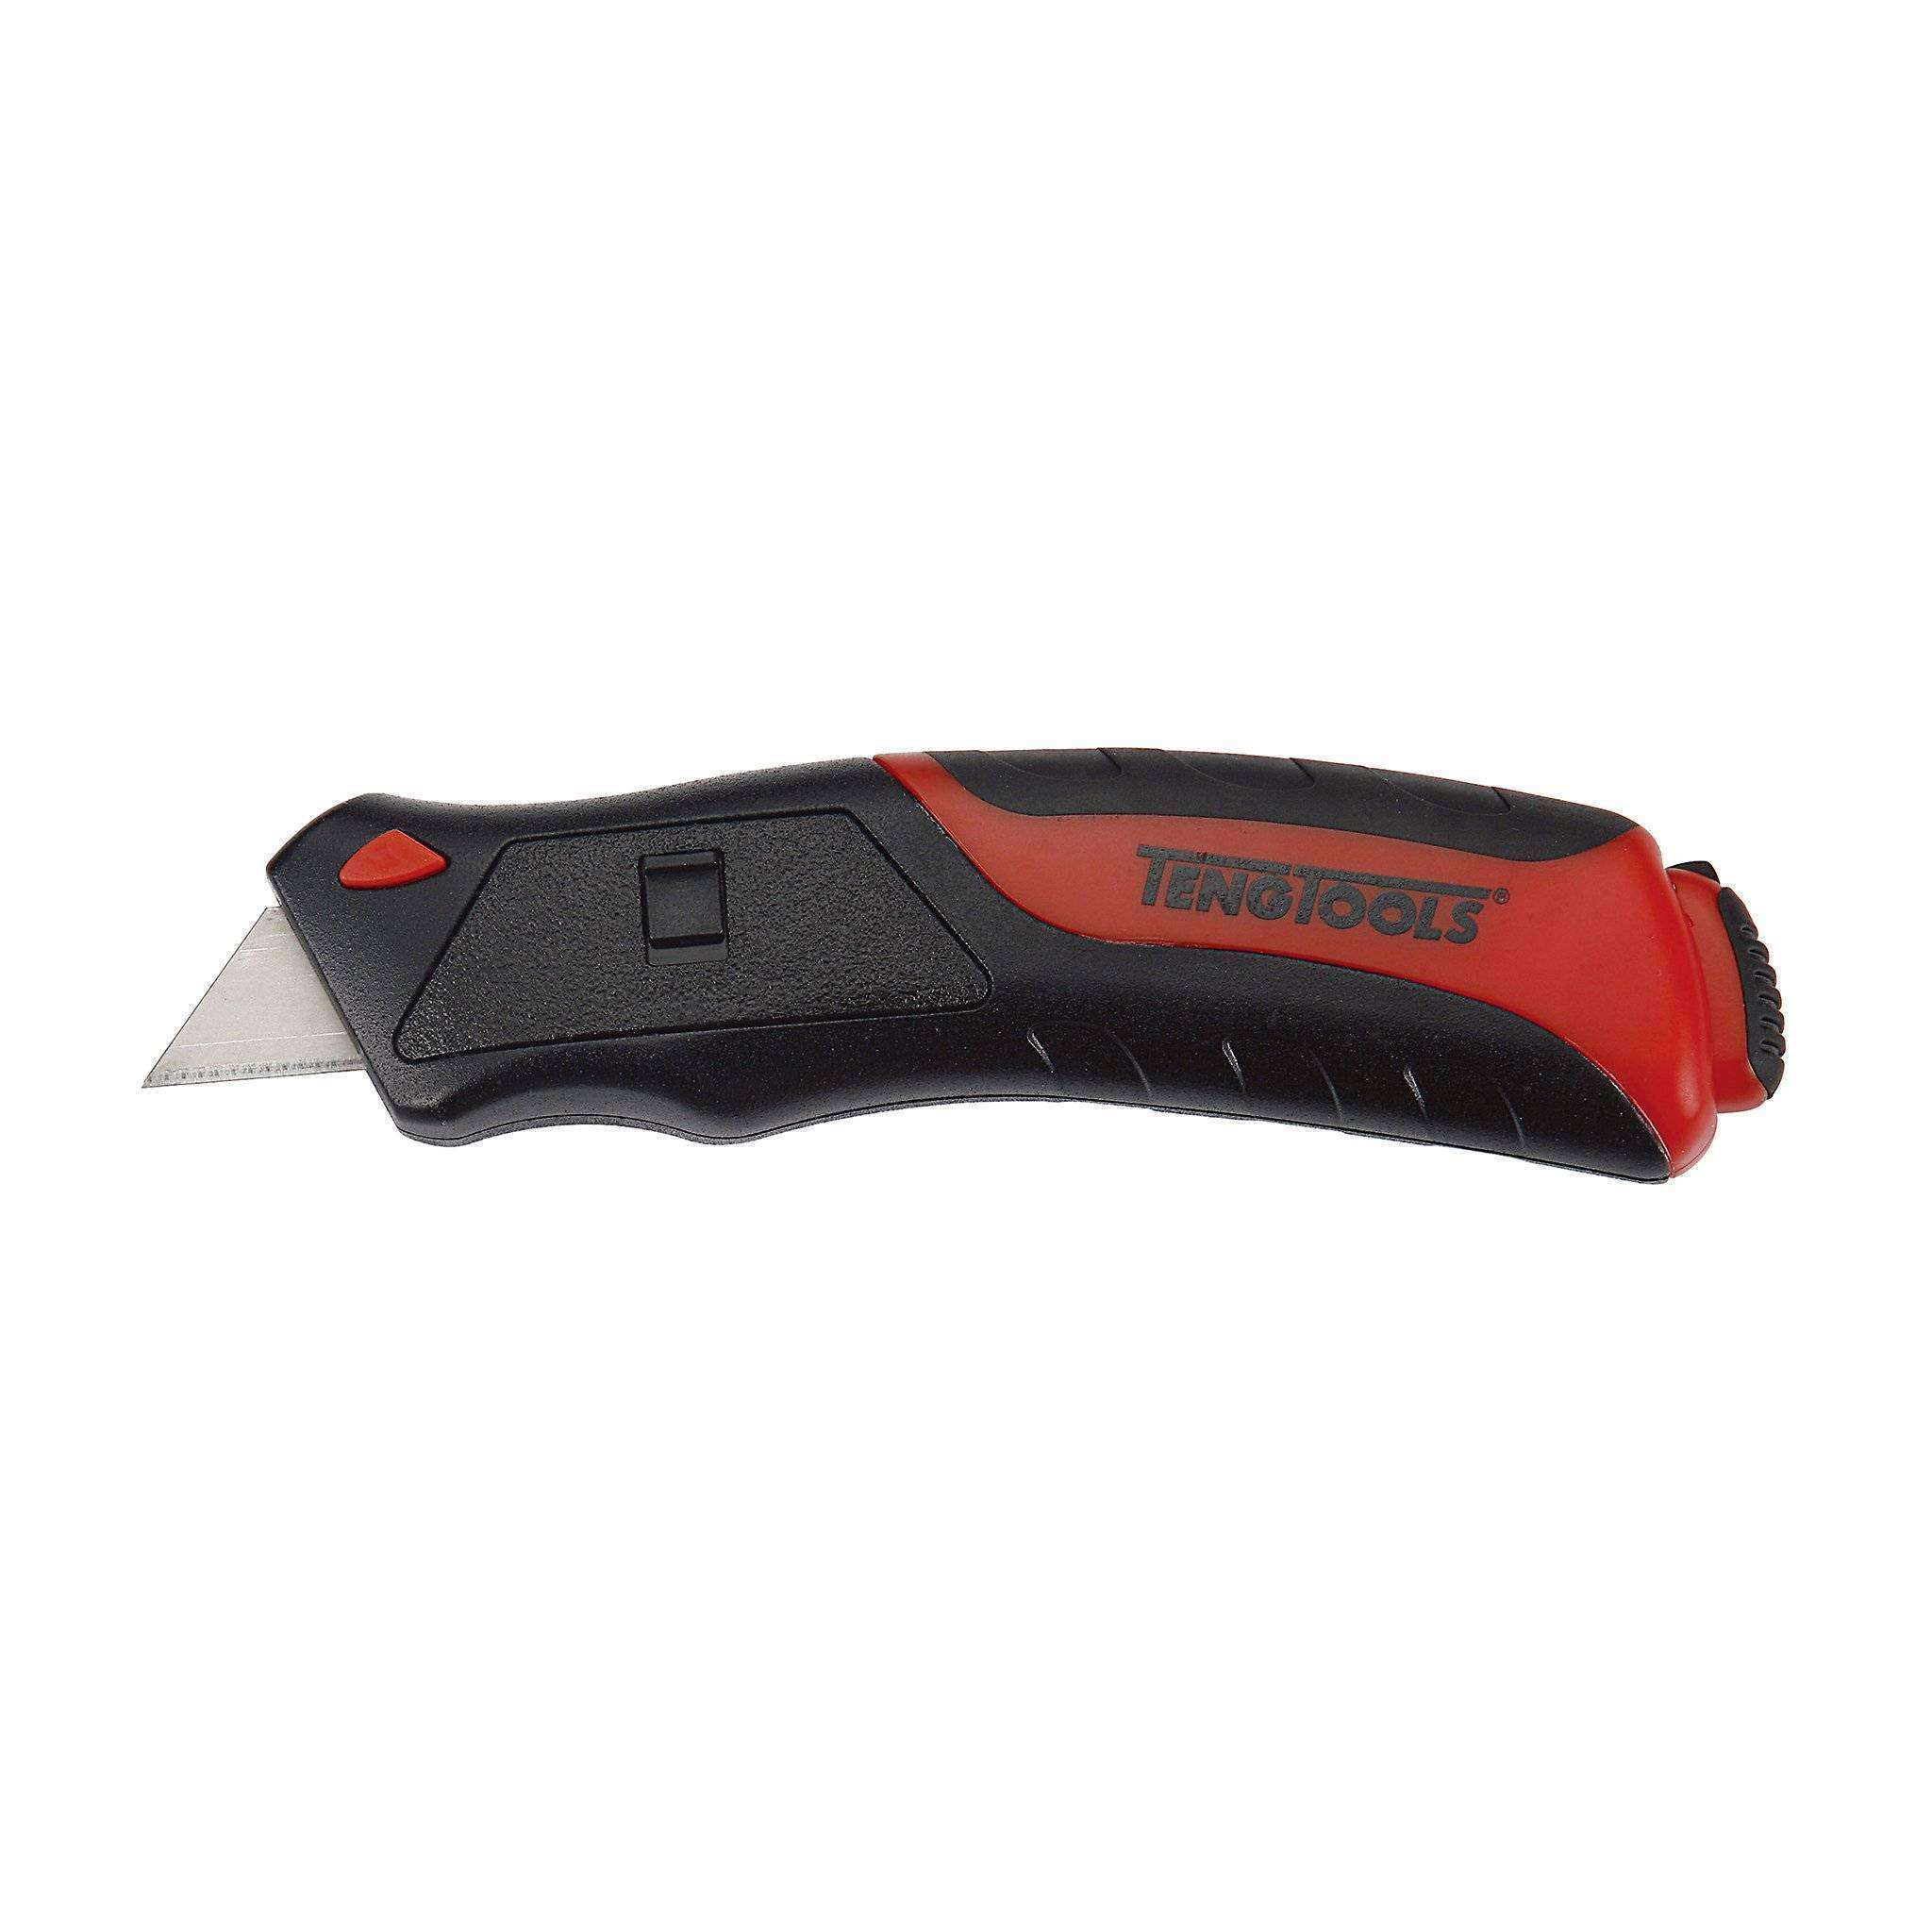 Aluminium Automatic Push Loading Utility Knife - Teng Tools 711 - Teng Tools USA